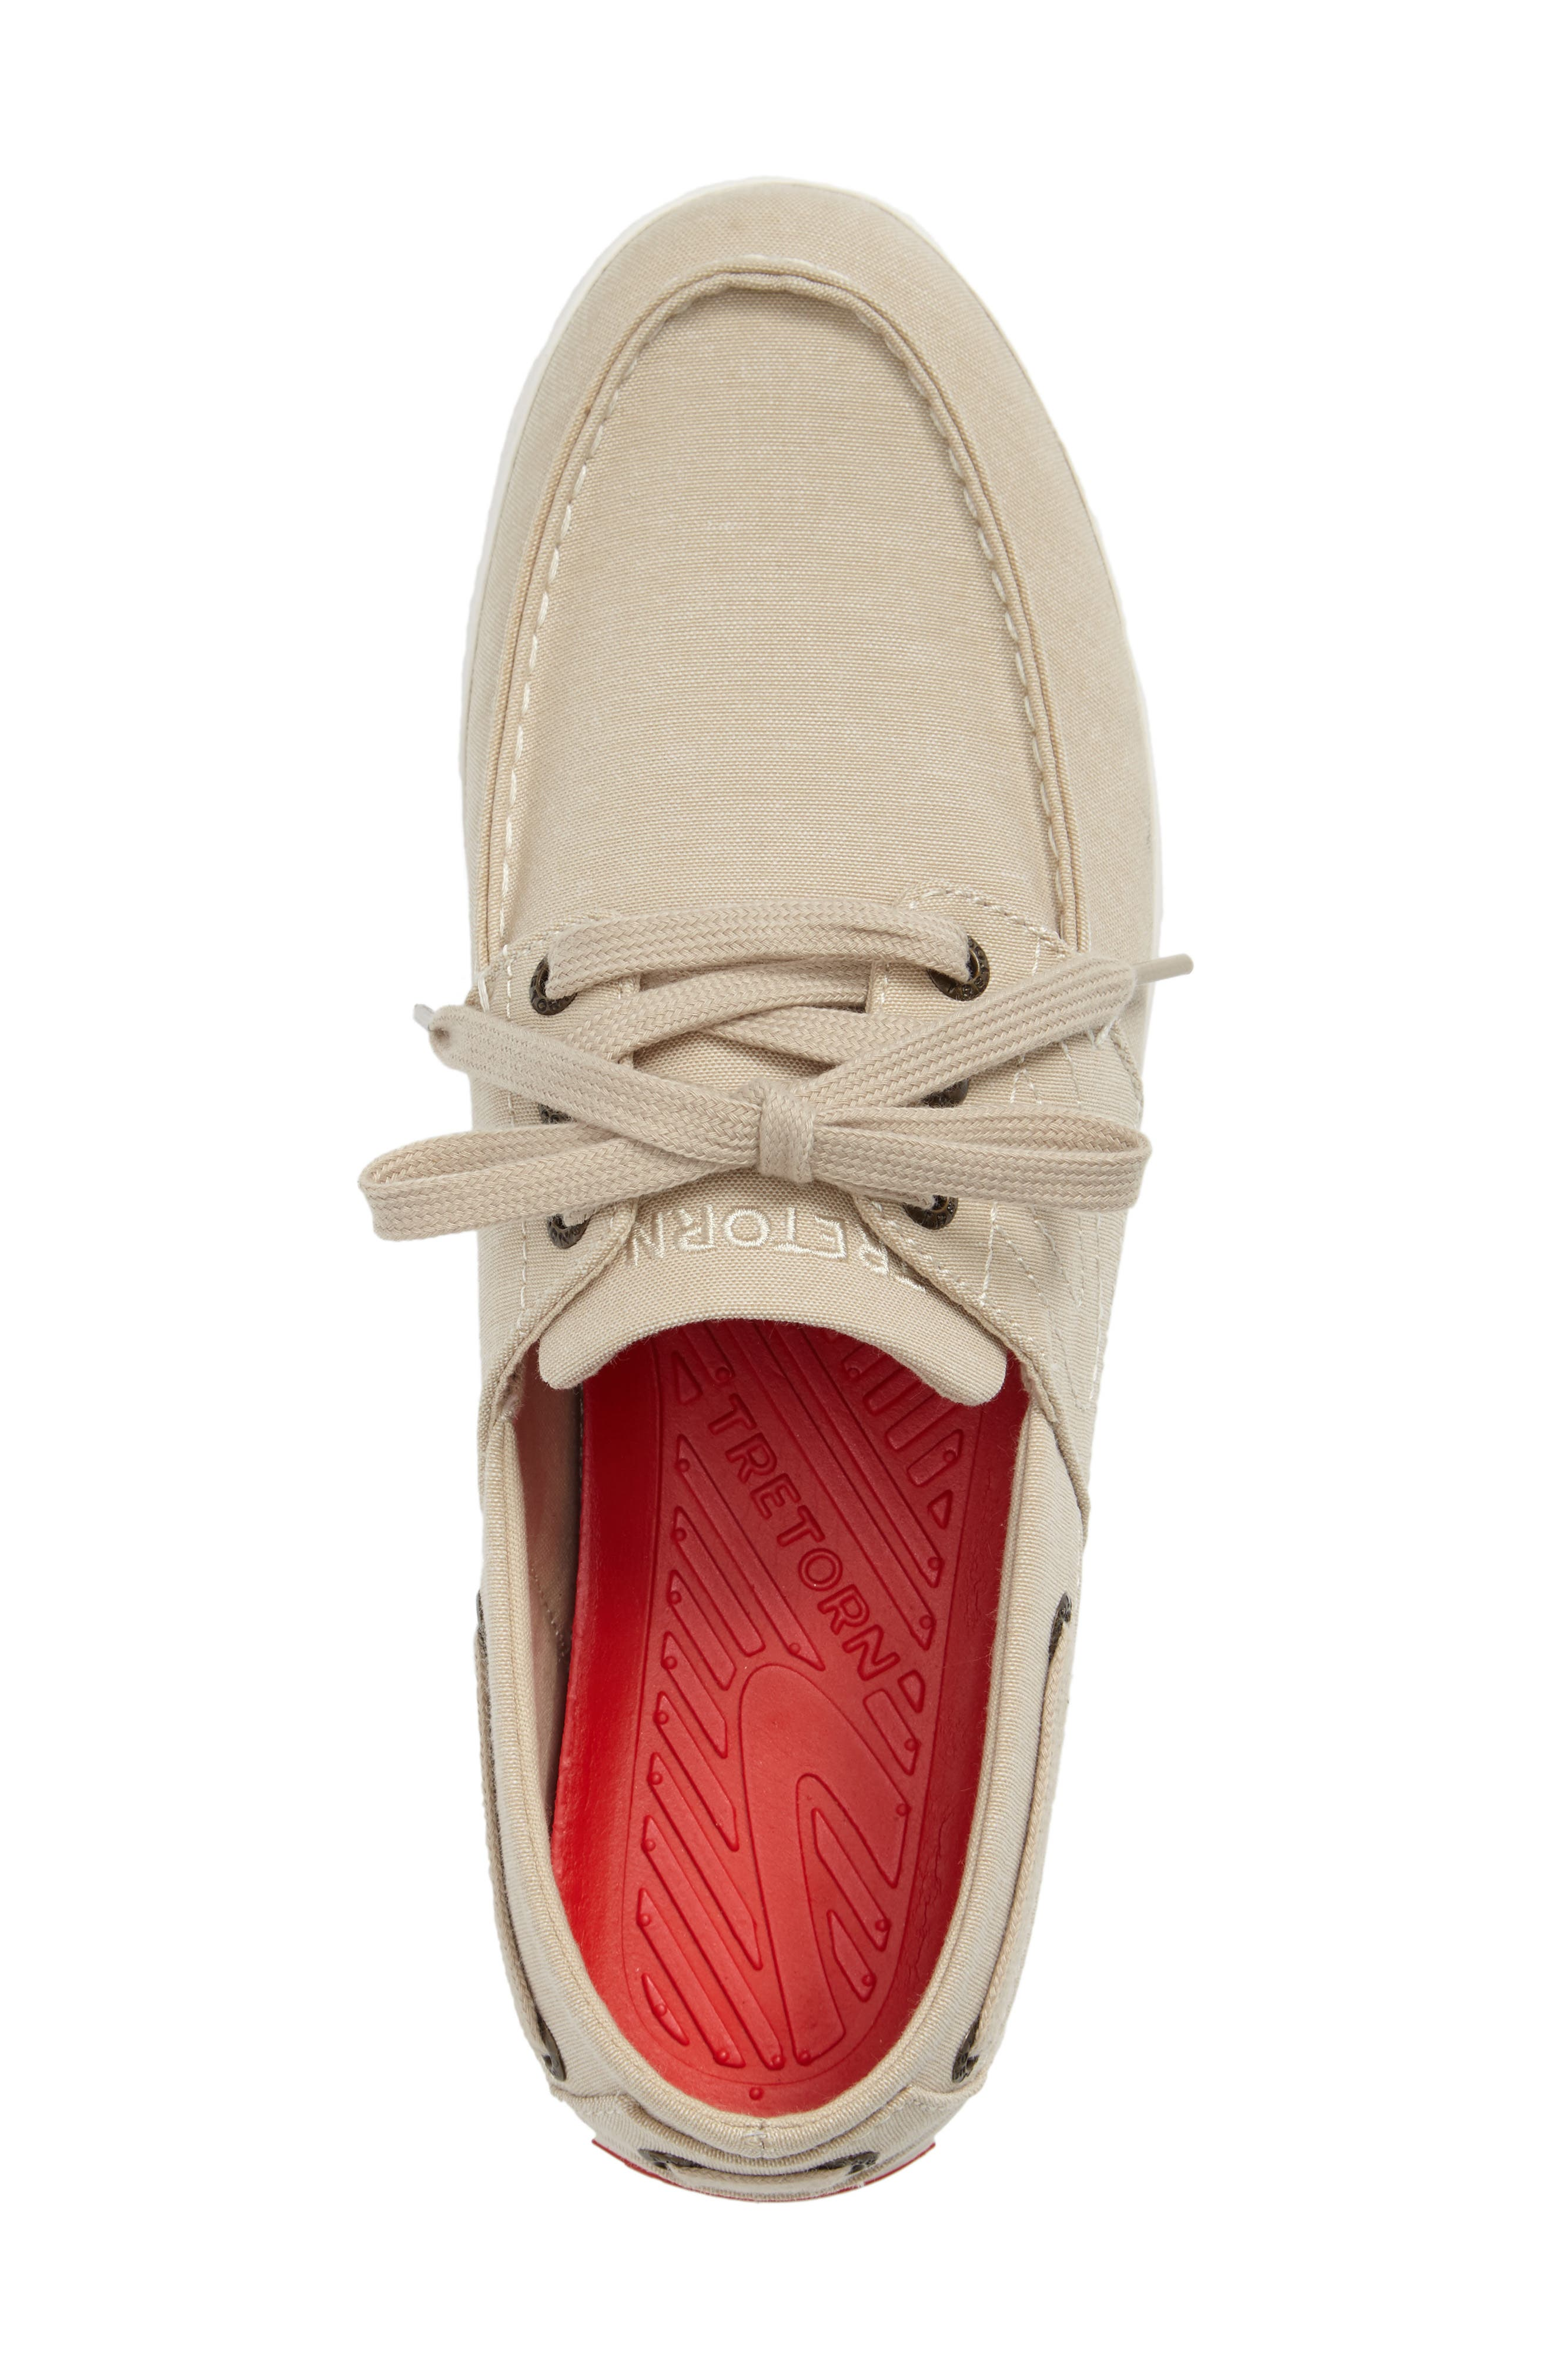 Motto Boat Shoe,                             Alternate thumbnail 3, color,                             OYSTER CANVAS